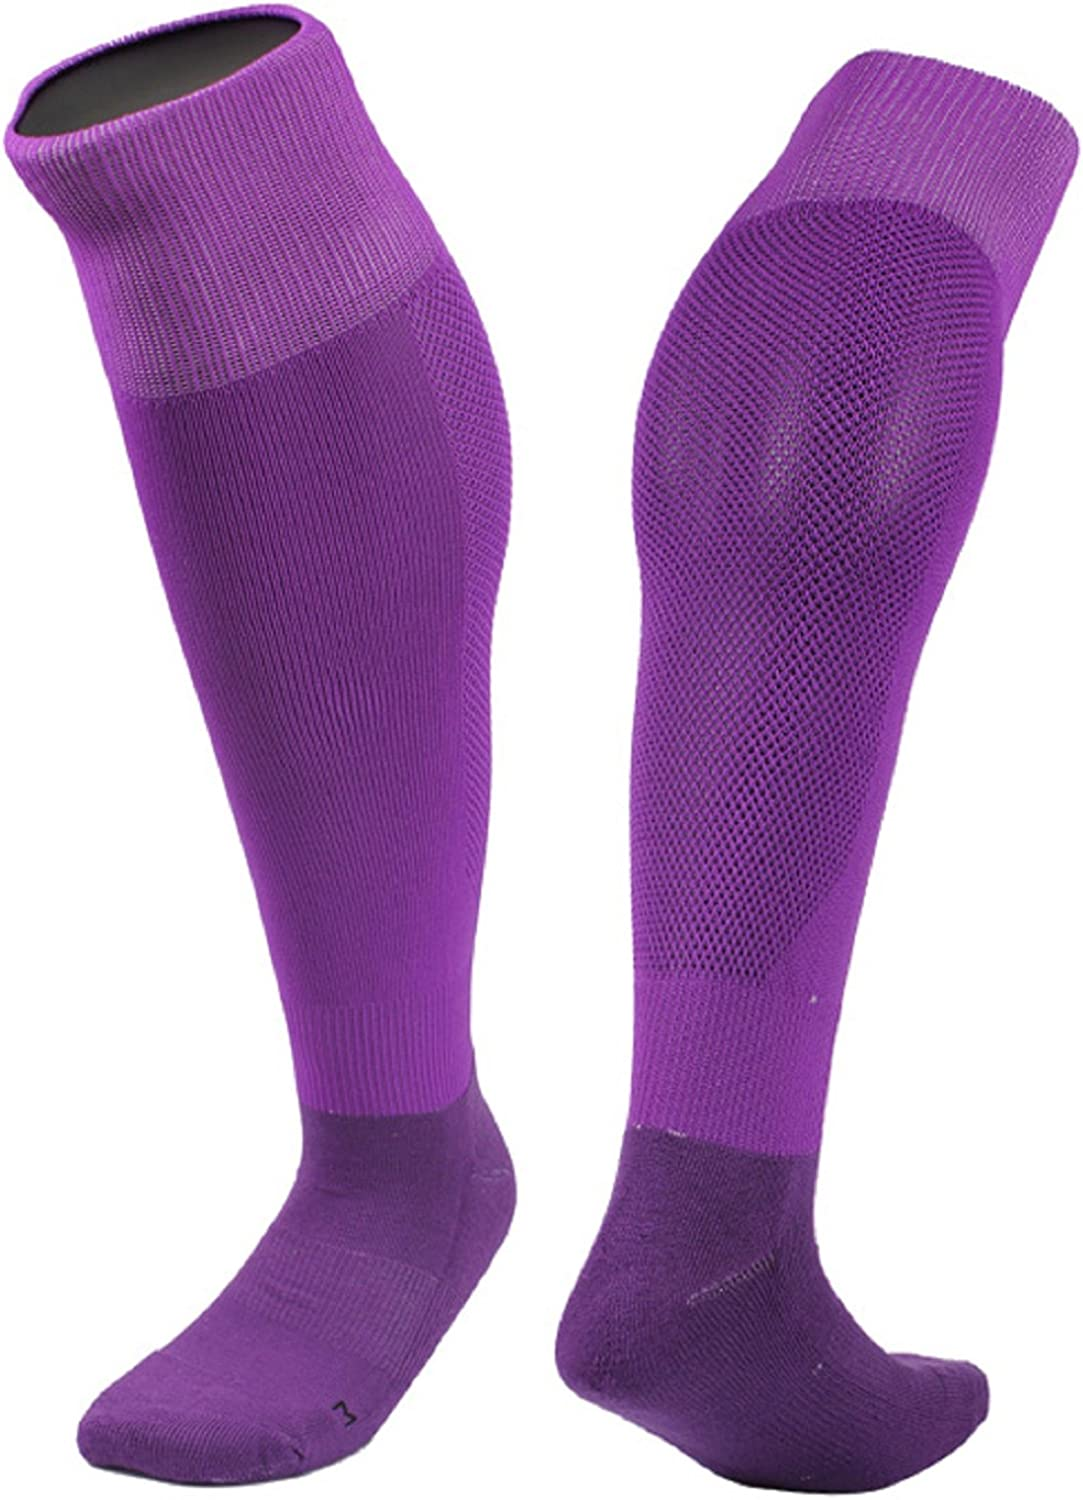 Lian LifeStyle Womens 1 Pair Knee High Sports Socks for Baseball//Soccer Size M